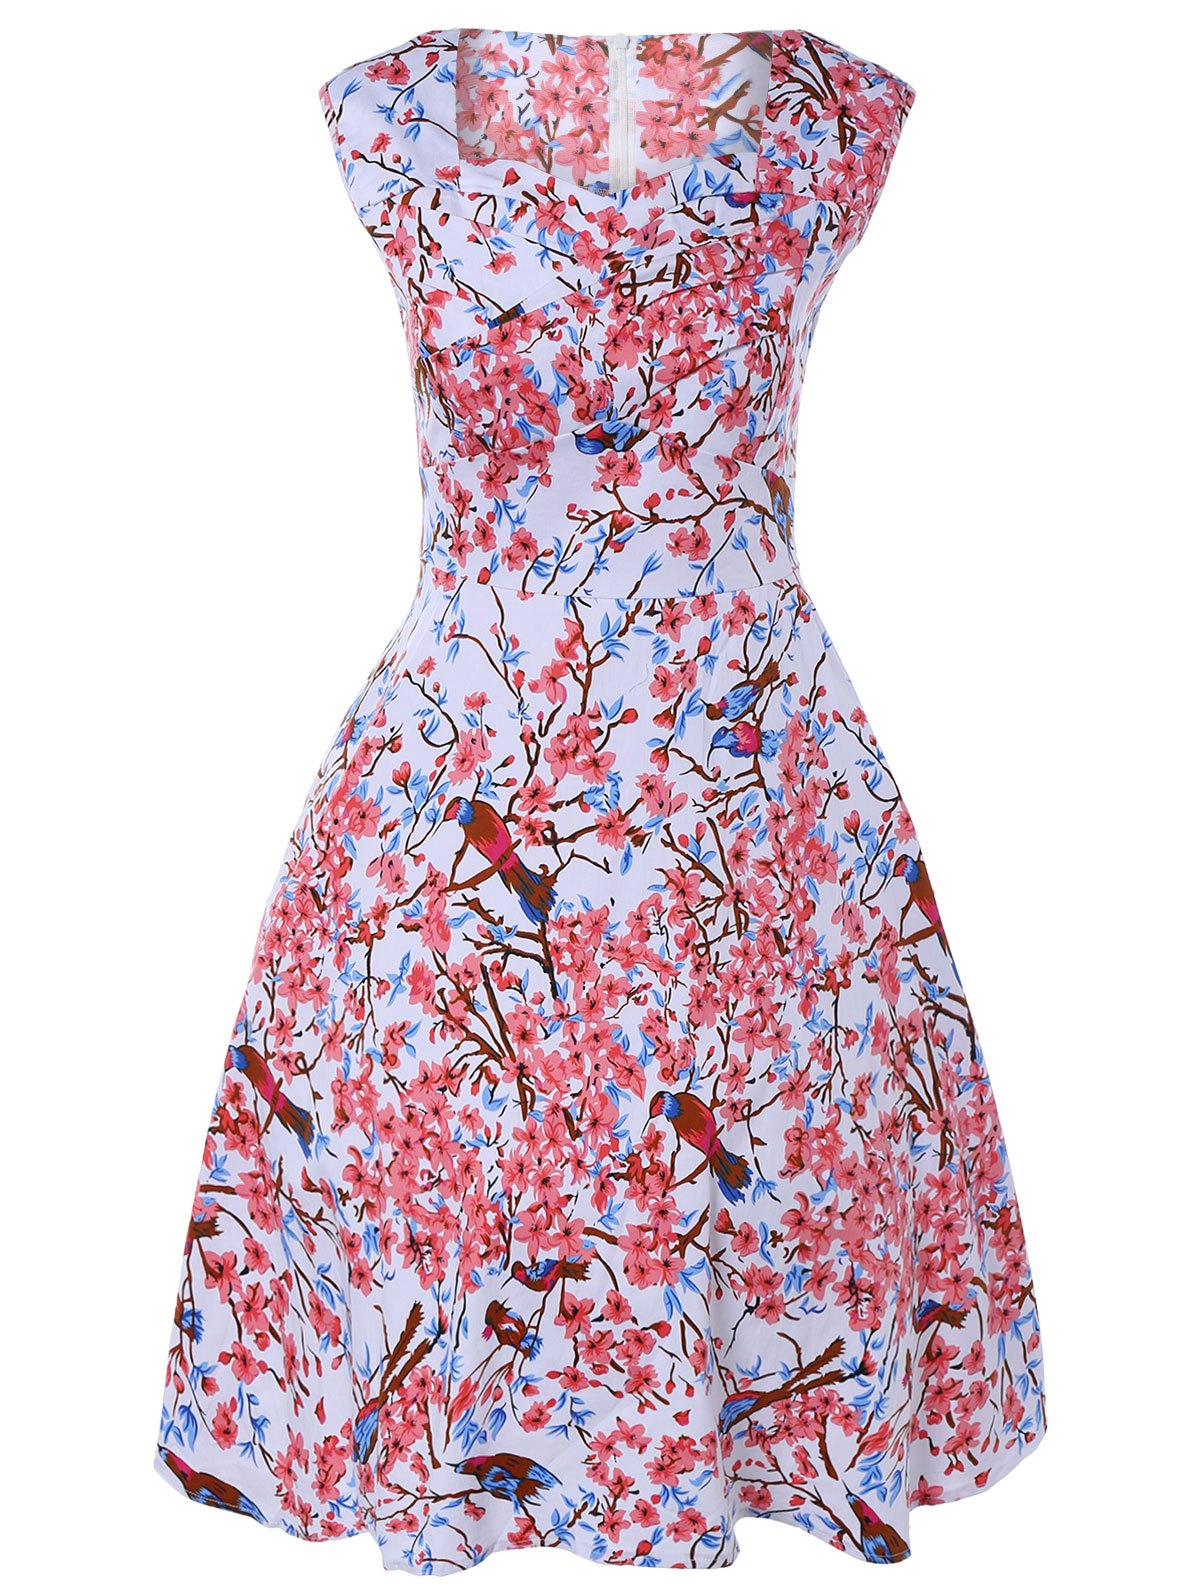 Sleeveless Sweetheart Neck Retro Floral Skater Dress - COLORMIX 4XL